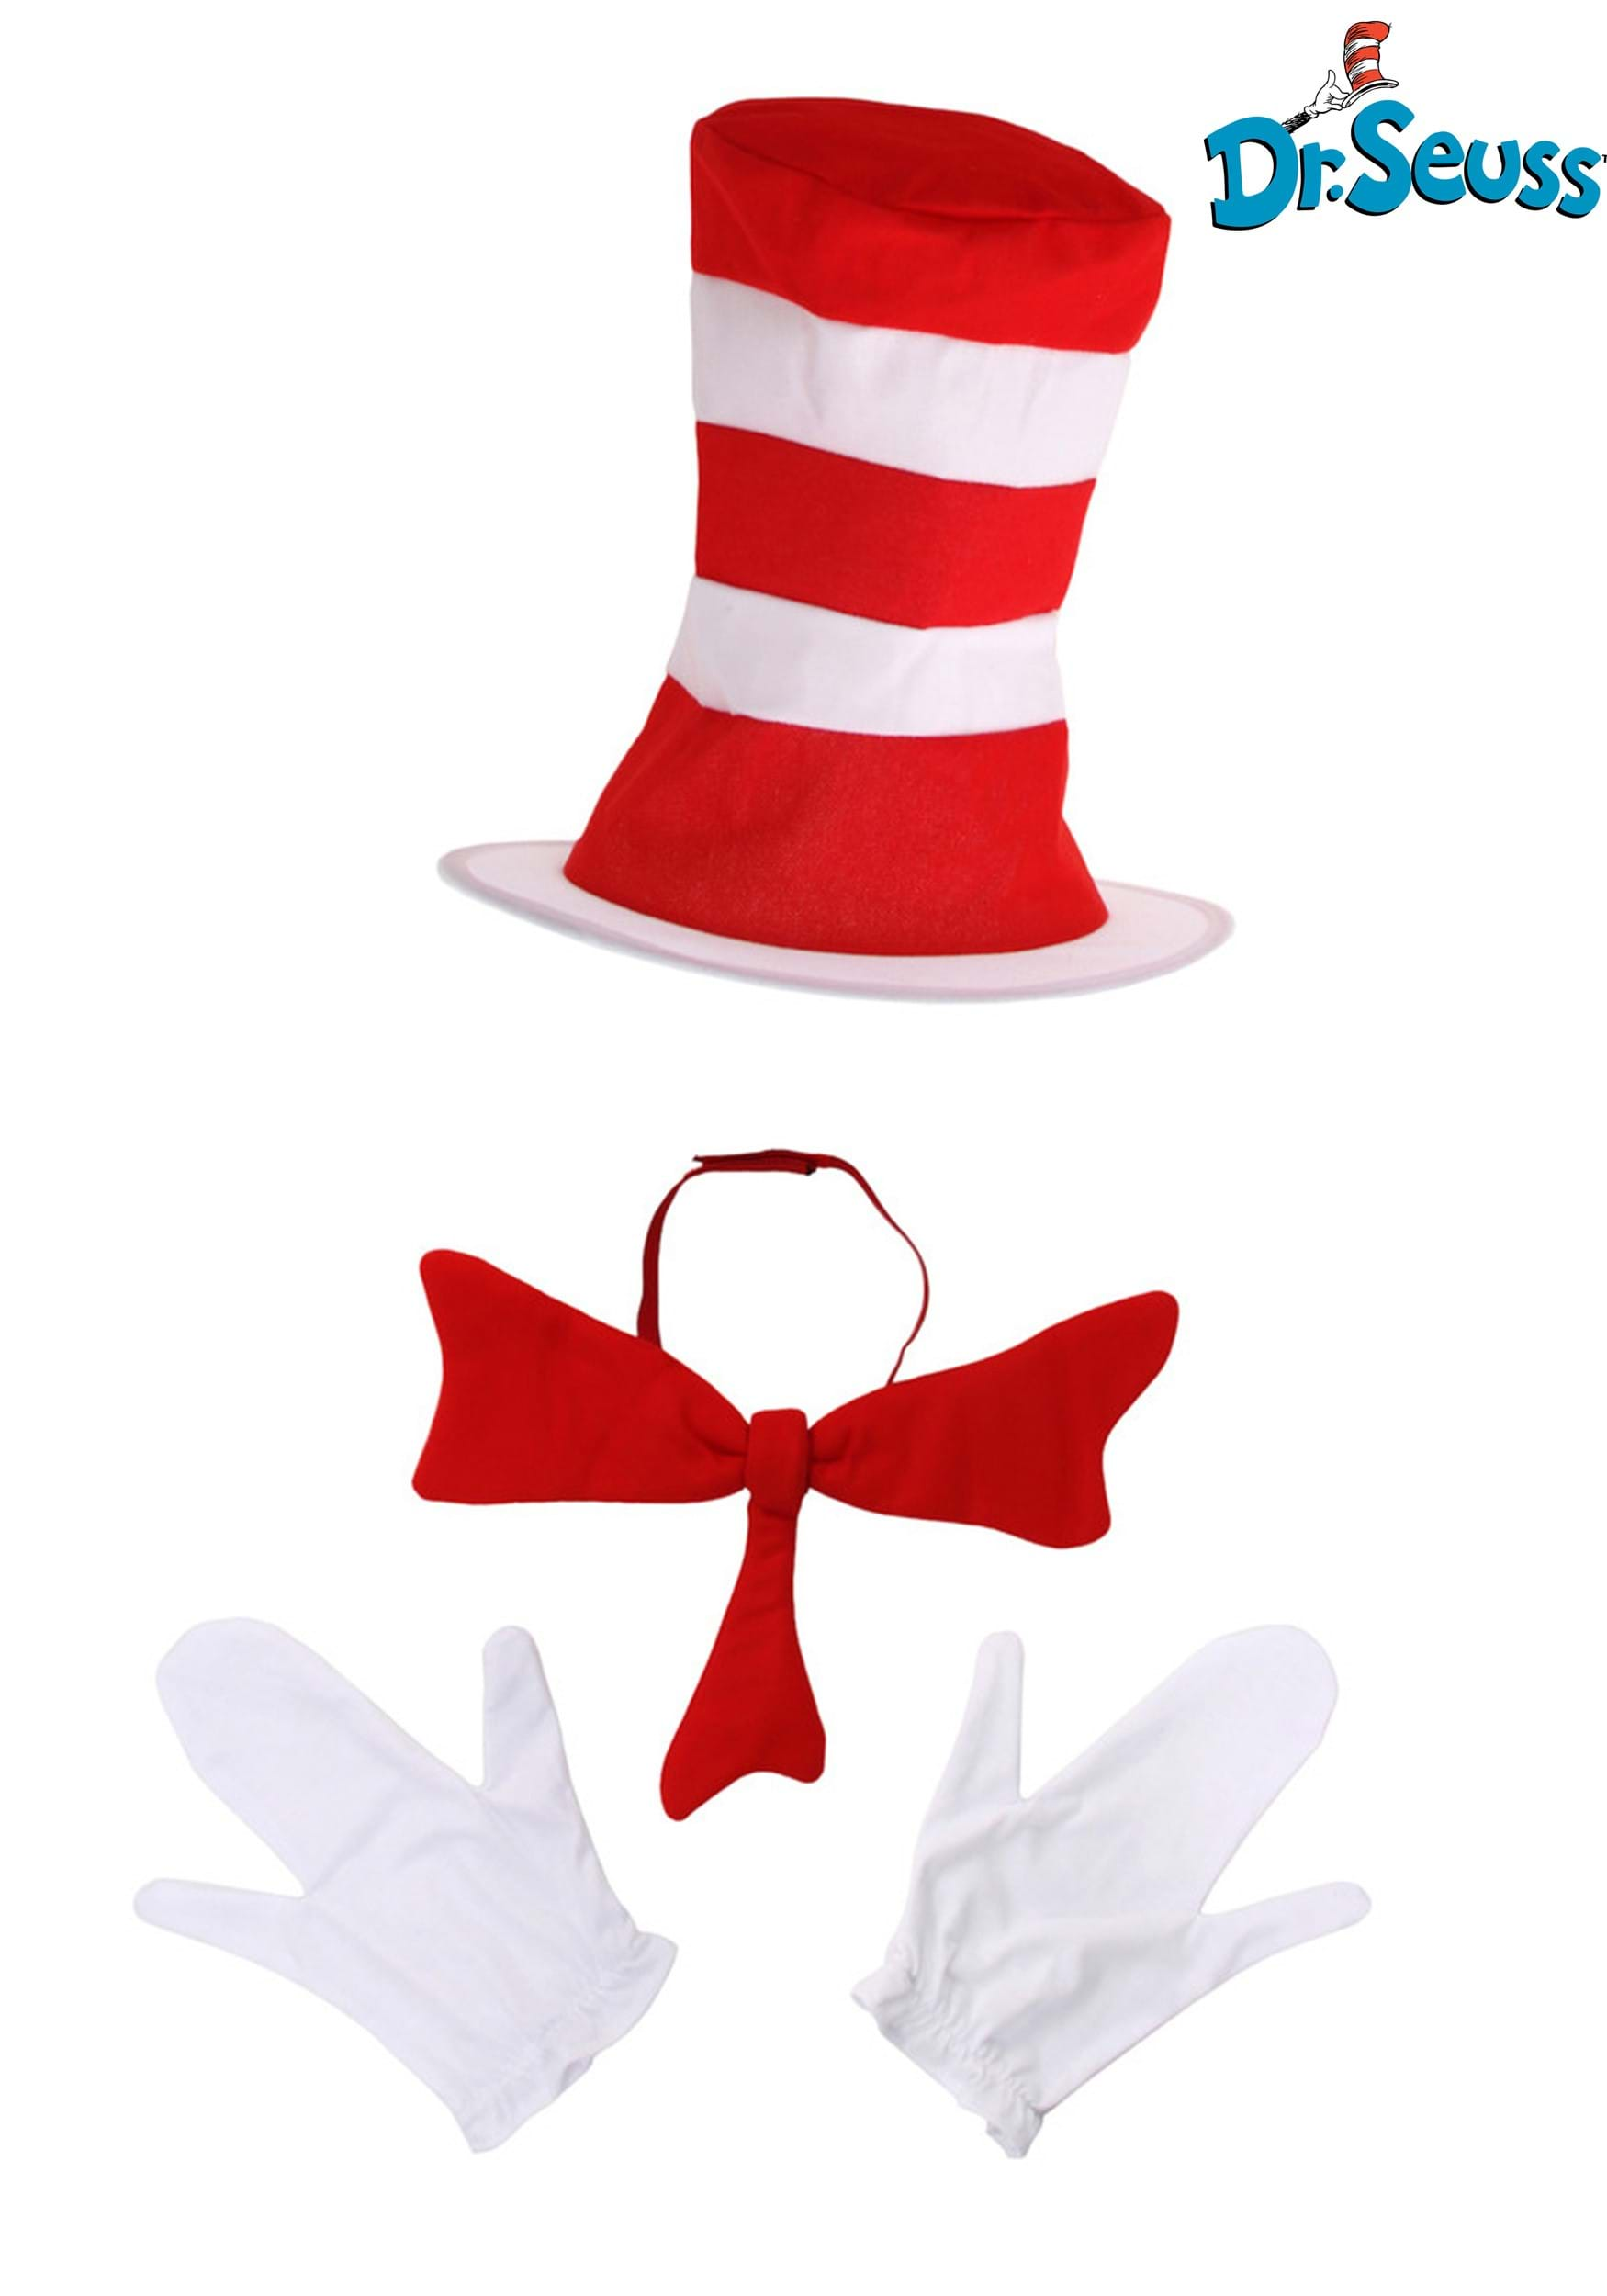 costume Dr seuss adult